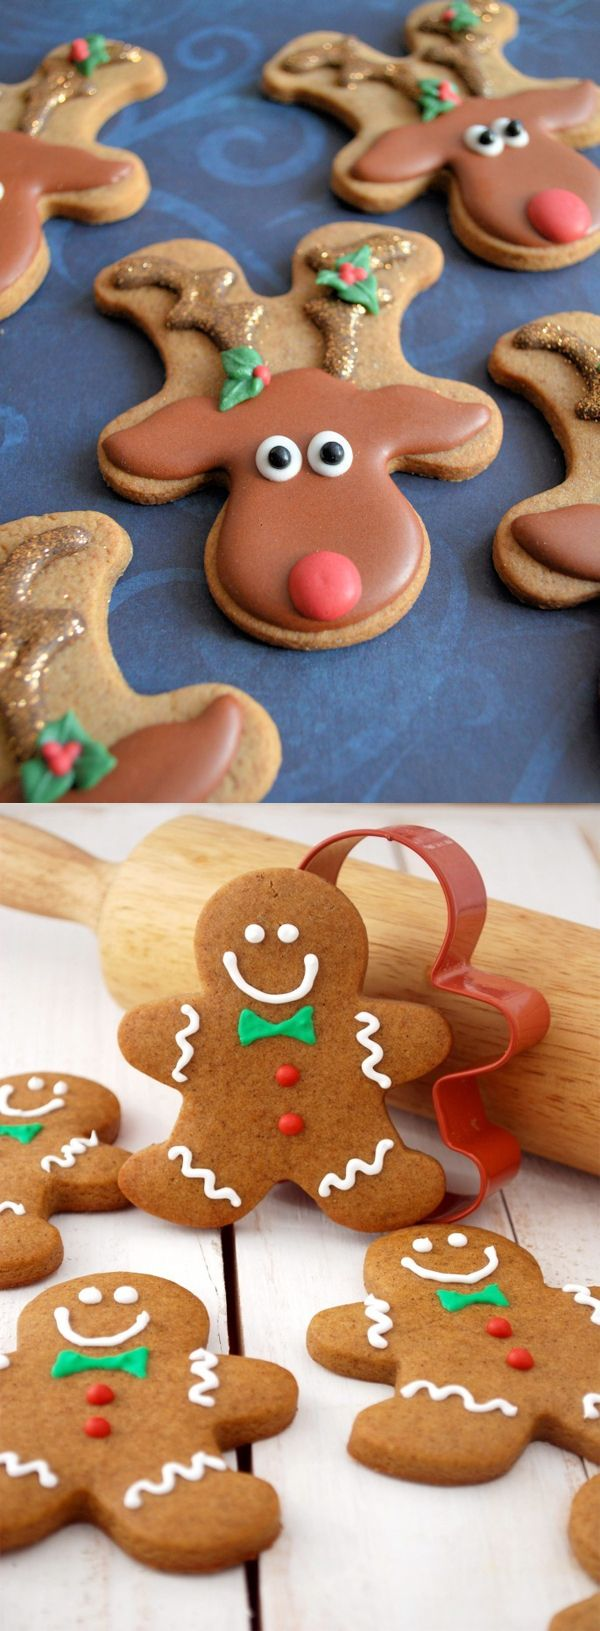 ginger bread cookies recipe christmas holiday baking better baking bible blog: